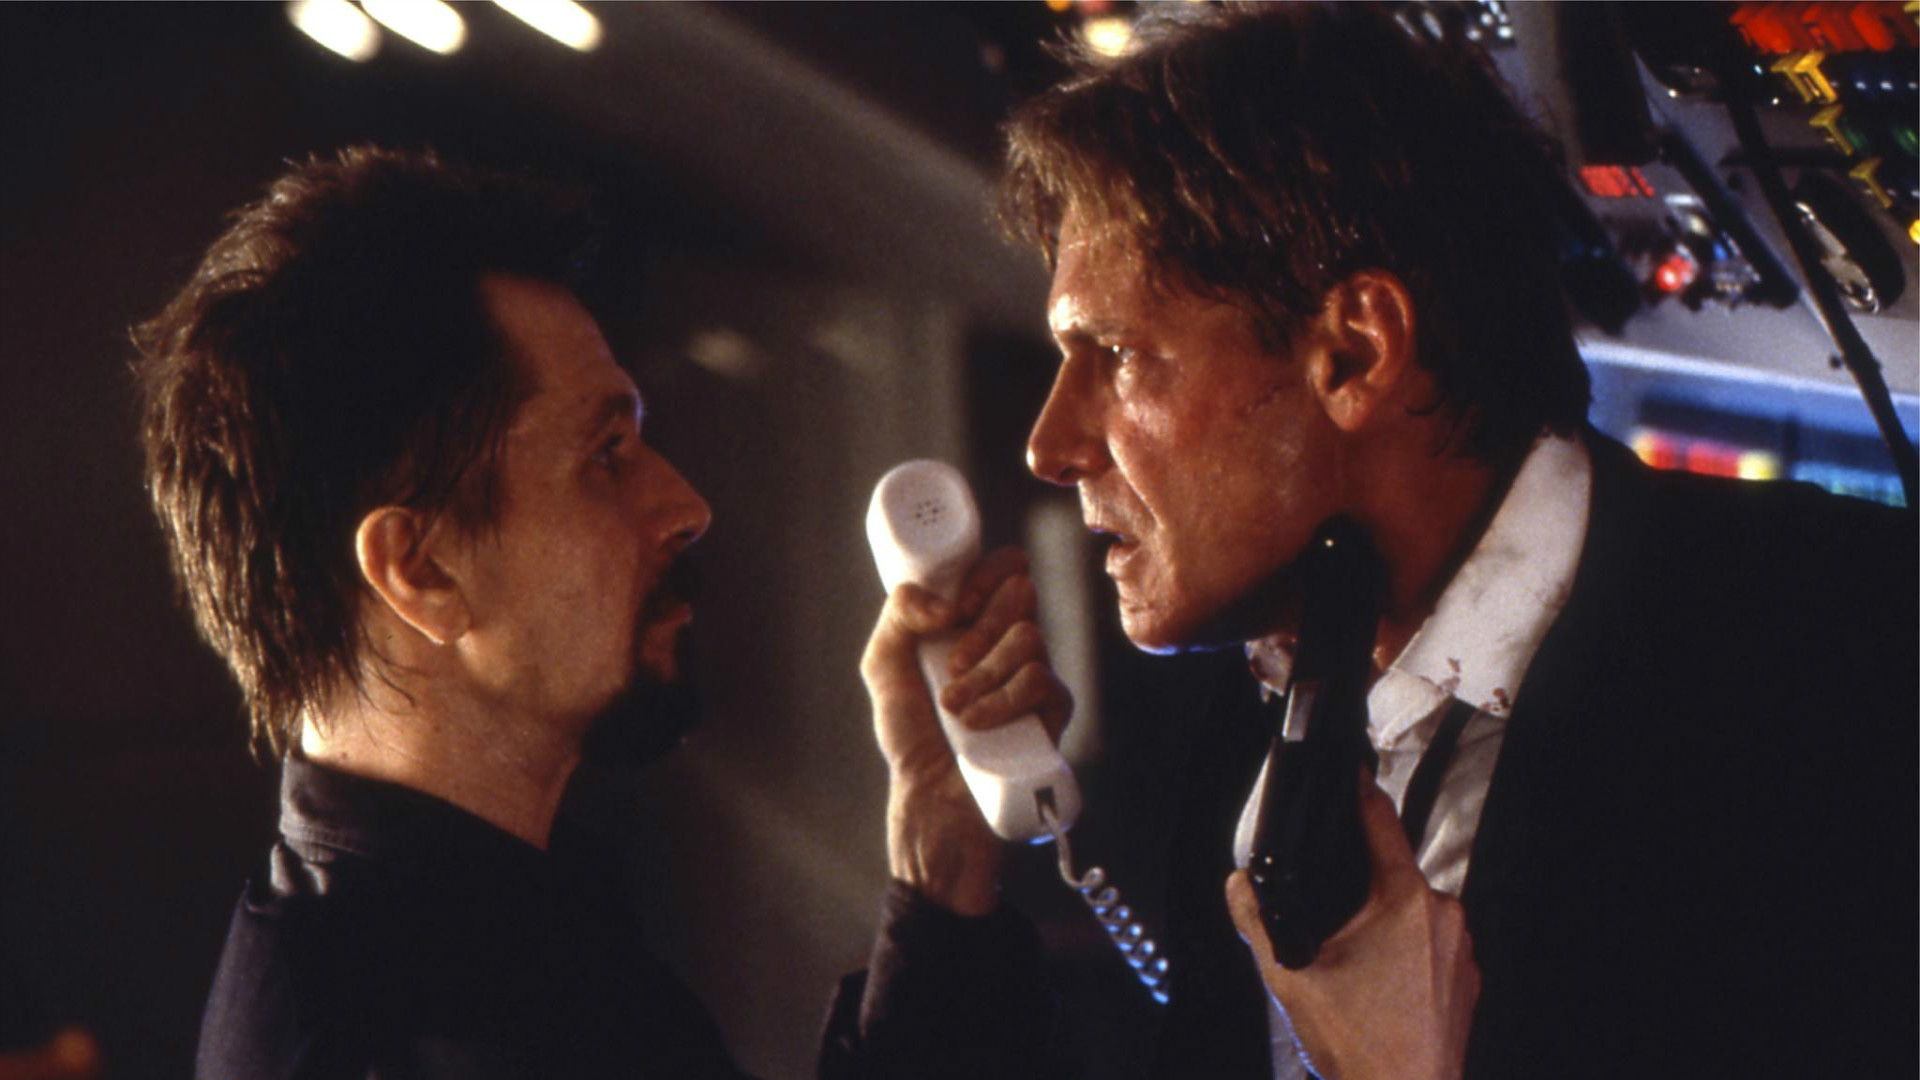 Gary Oldman and Harrison Ford in Air Force One.